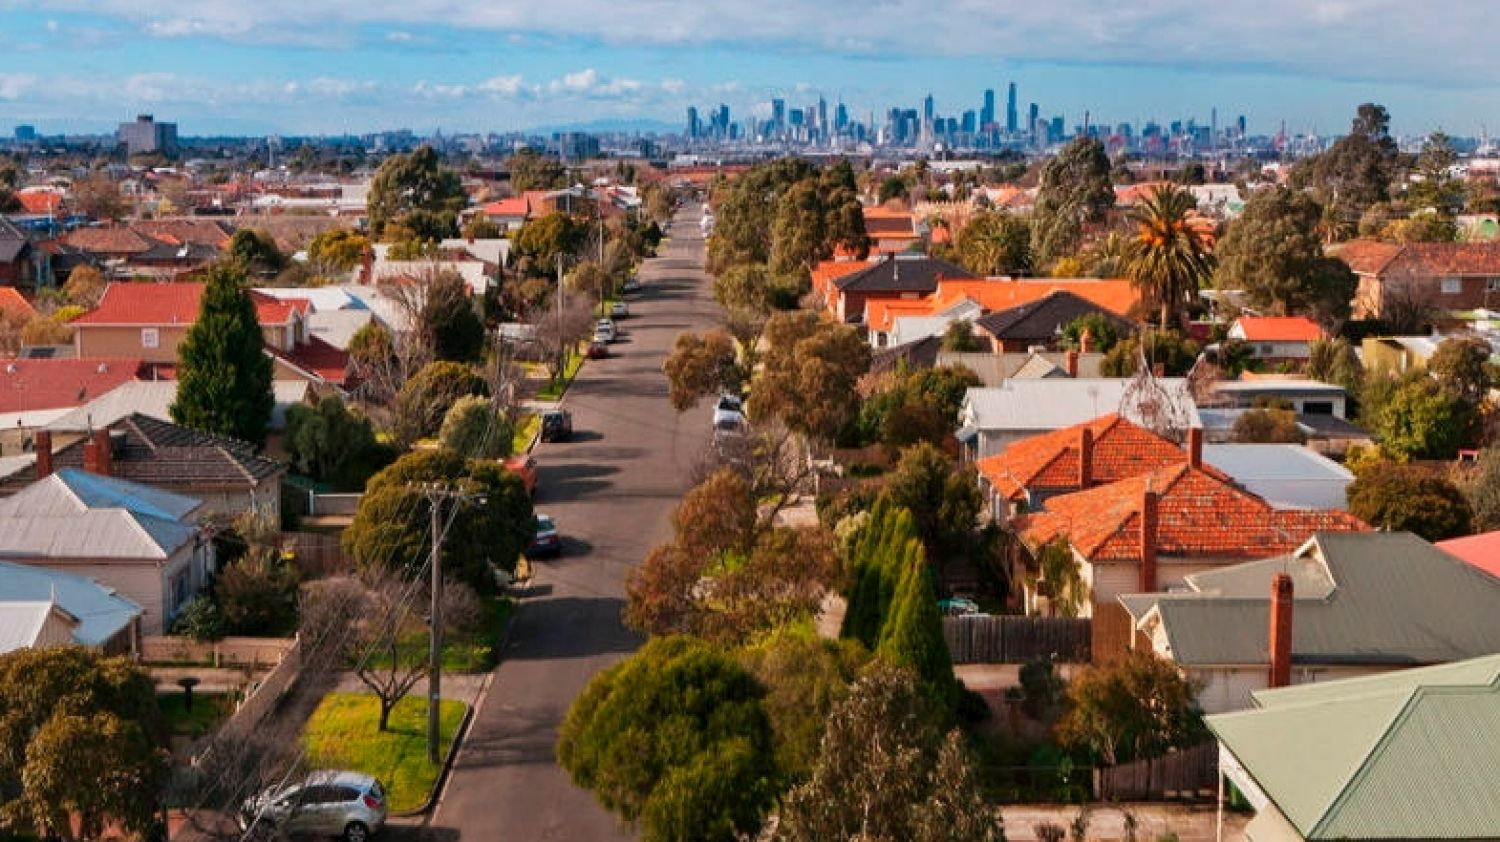 SOARING HOUSE PRICES IN MELBOURNE'S ONCE MOST AFFORDABLE AND LIVEABLE SUBURBS